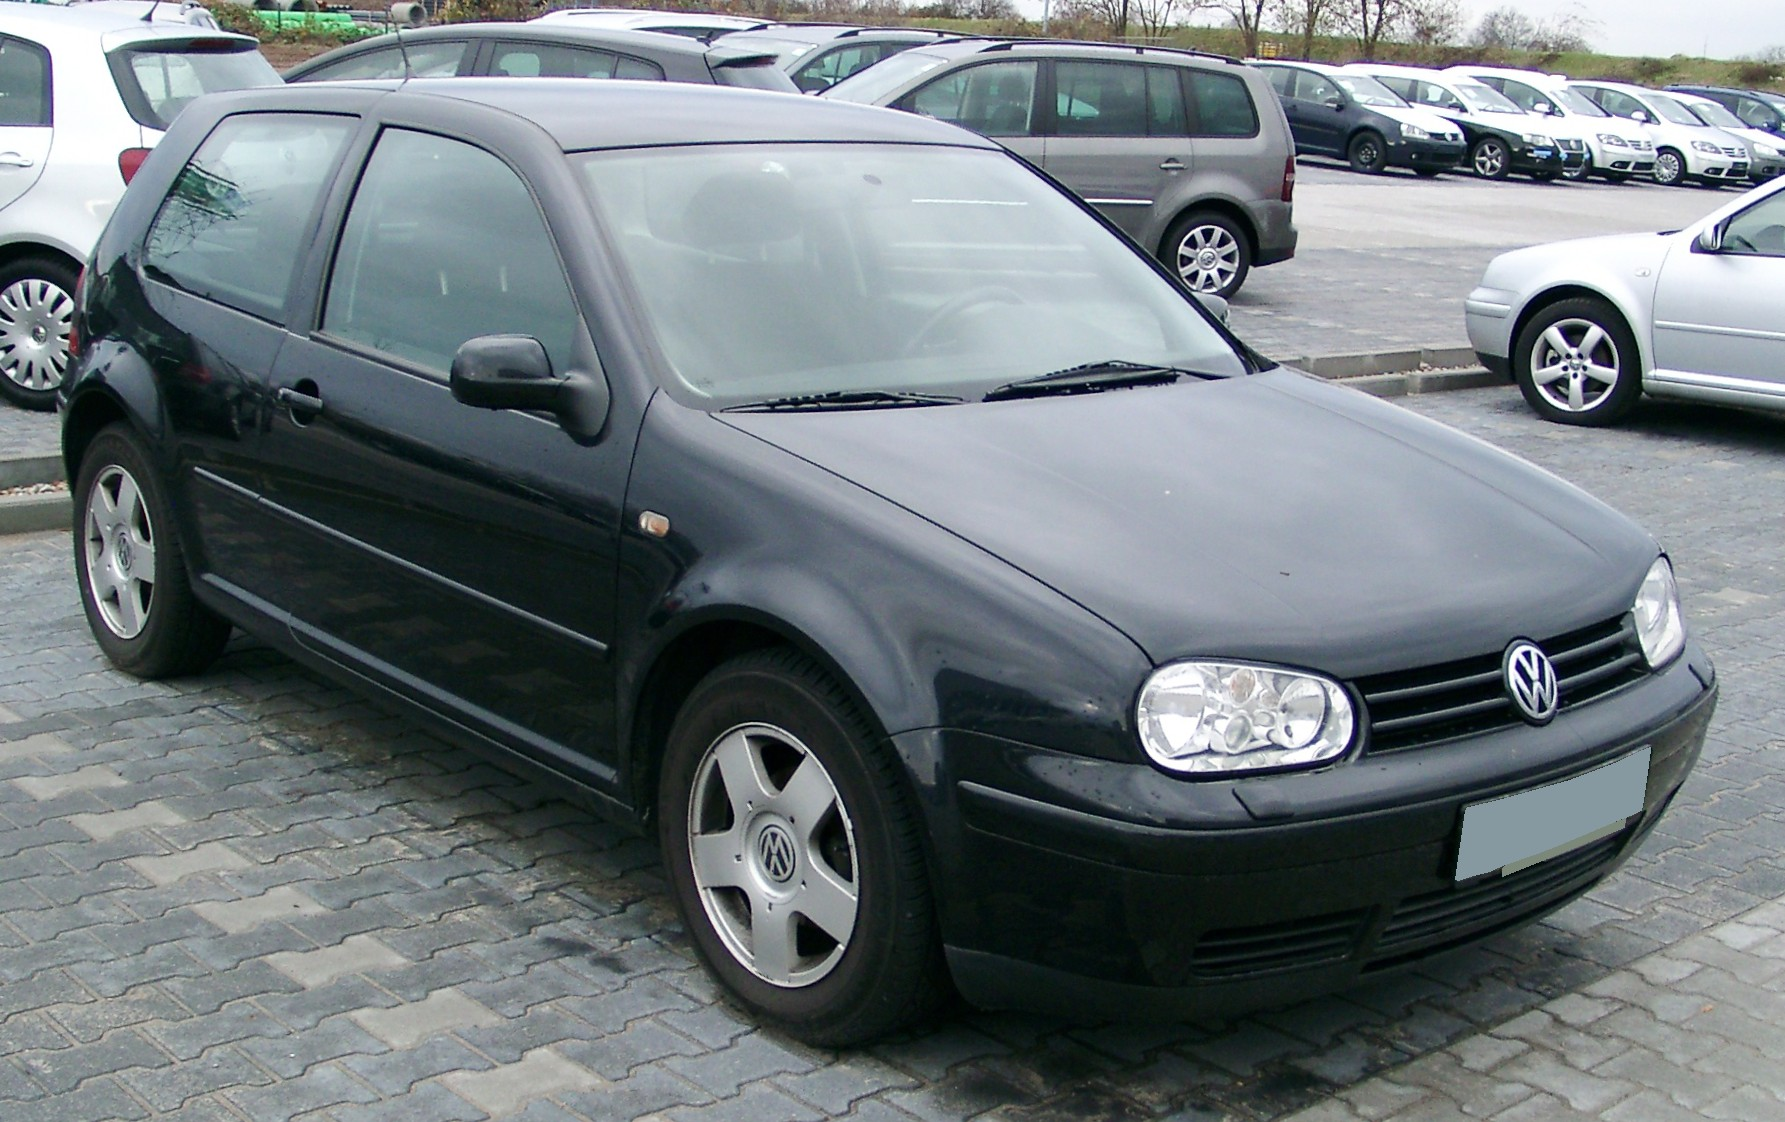 The first car I bought looked just like this VW Golf. (image courtesy of wikimedia commons)